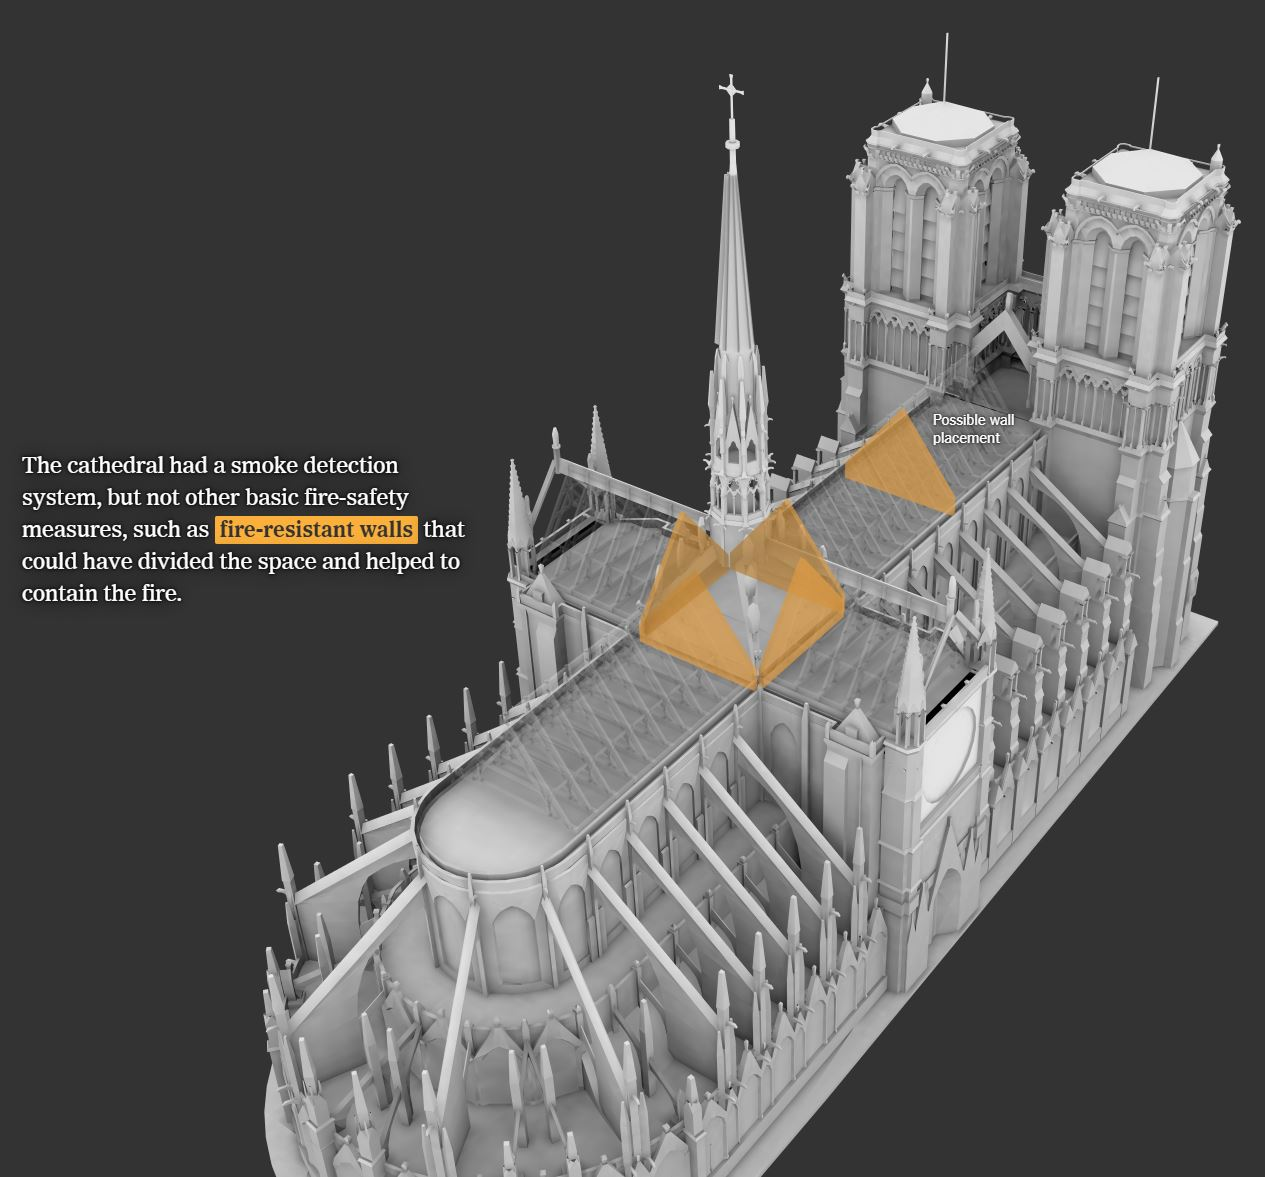 Structure of Notre Dame building showing fire resistant walls